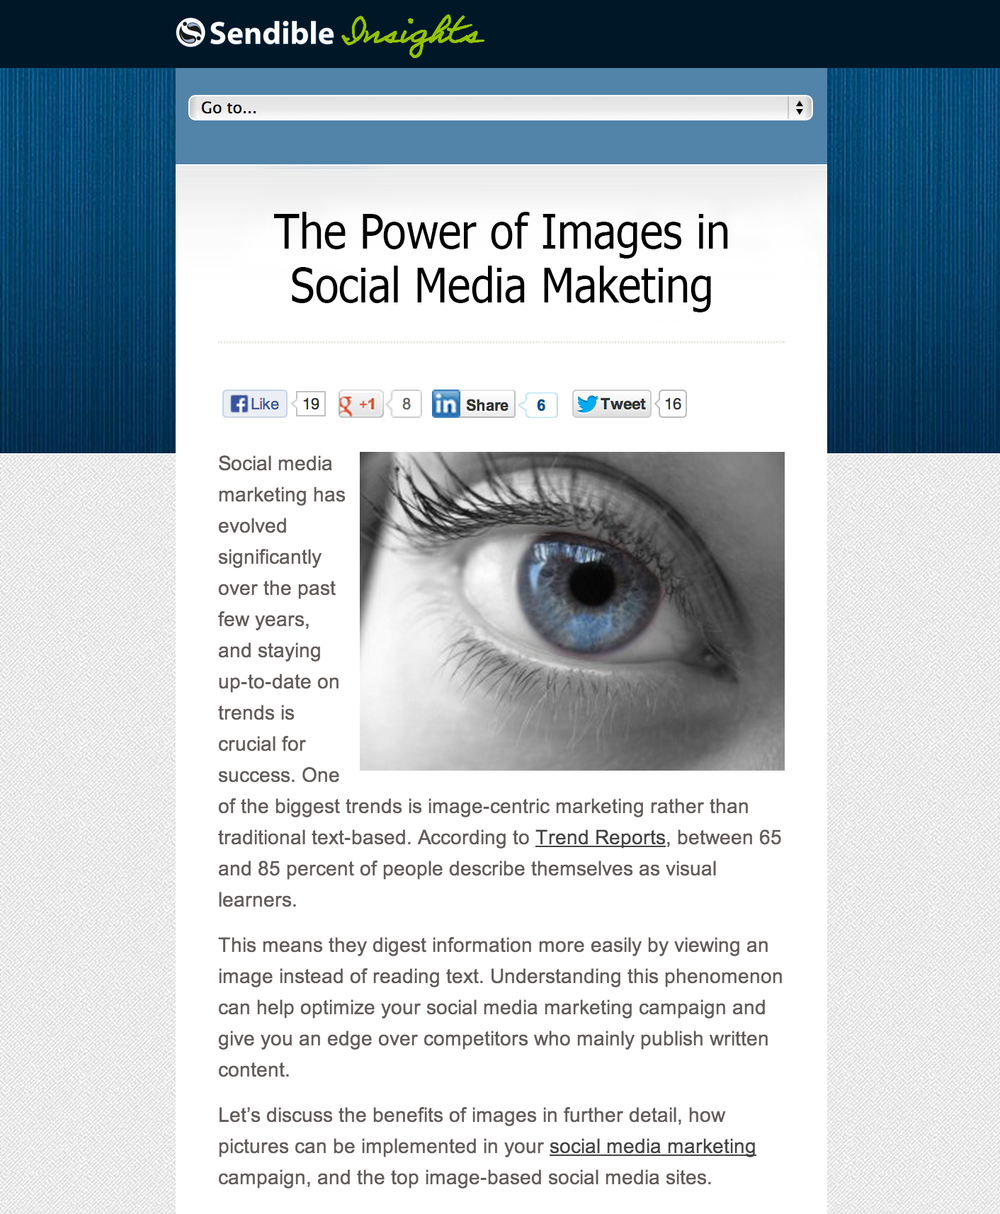 social_media_marketing_image_power.png